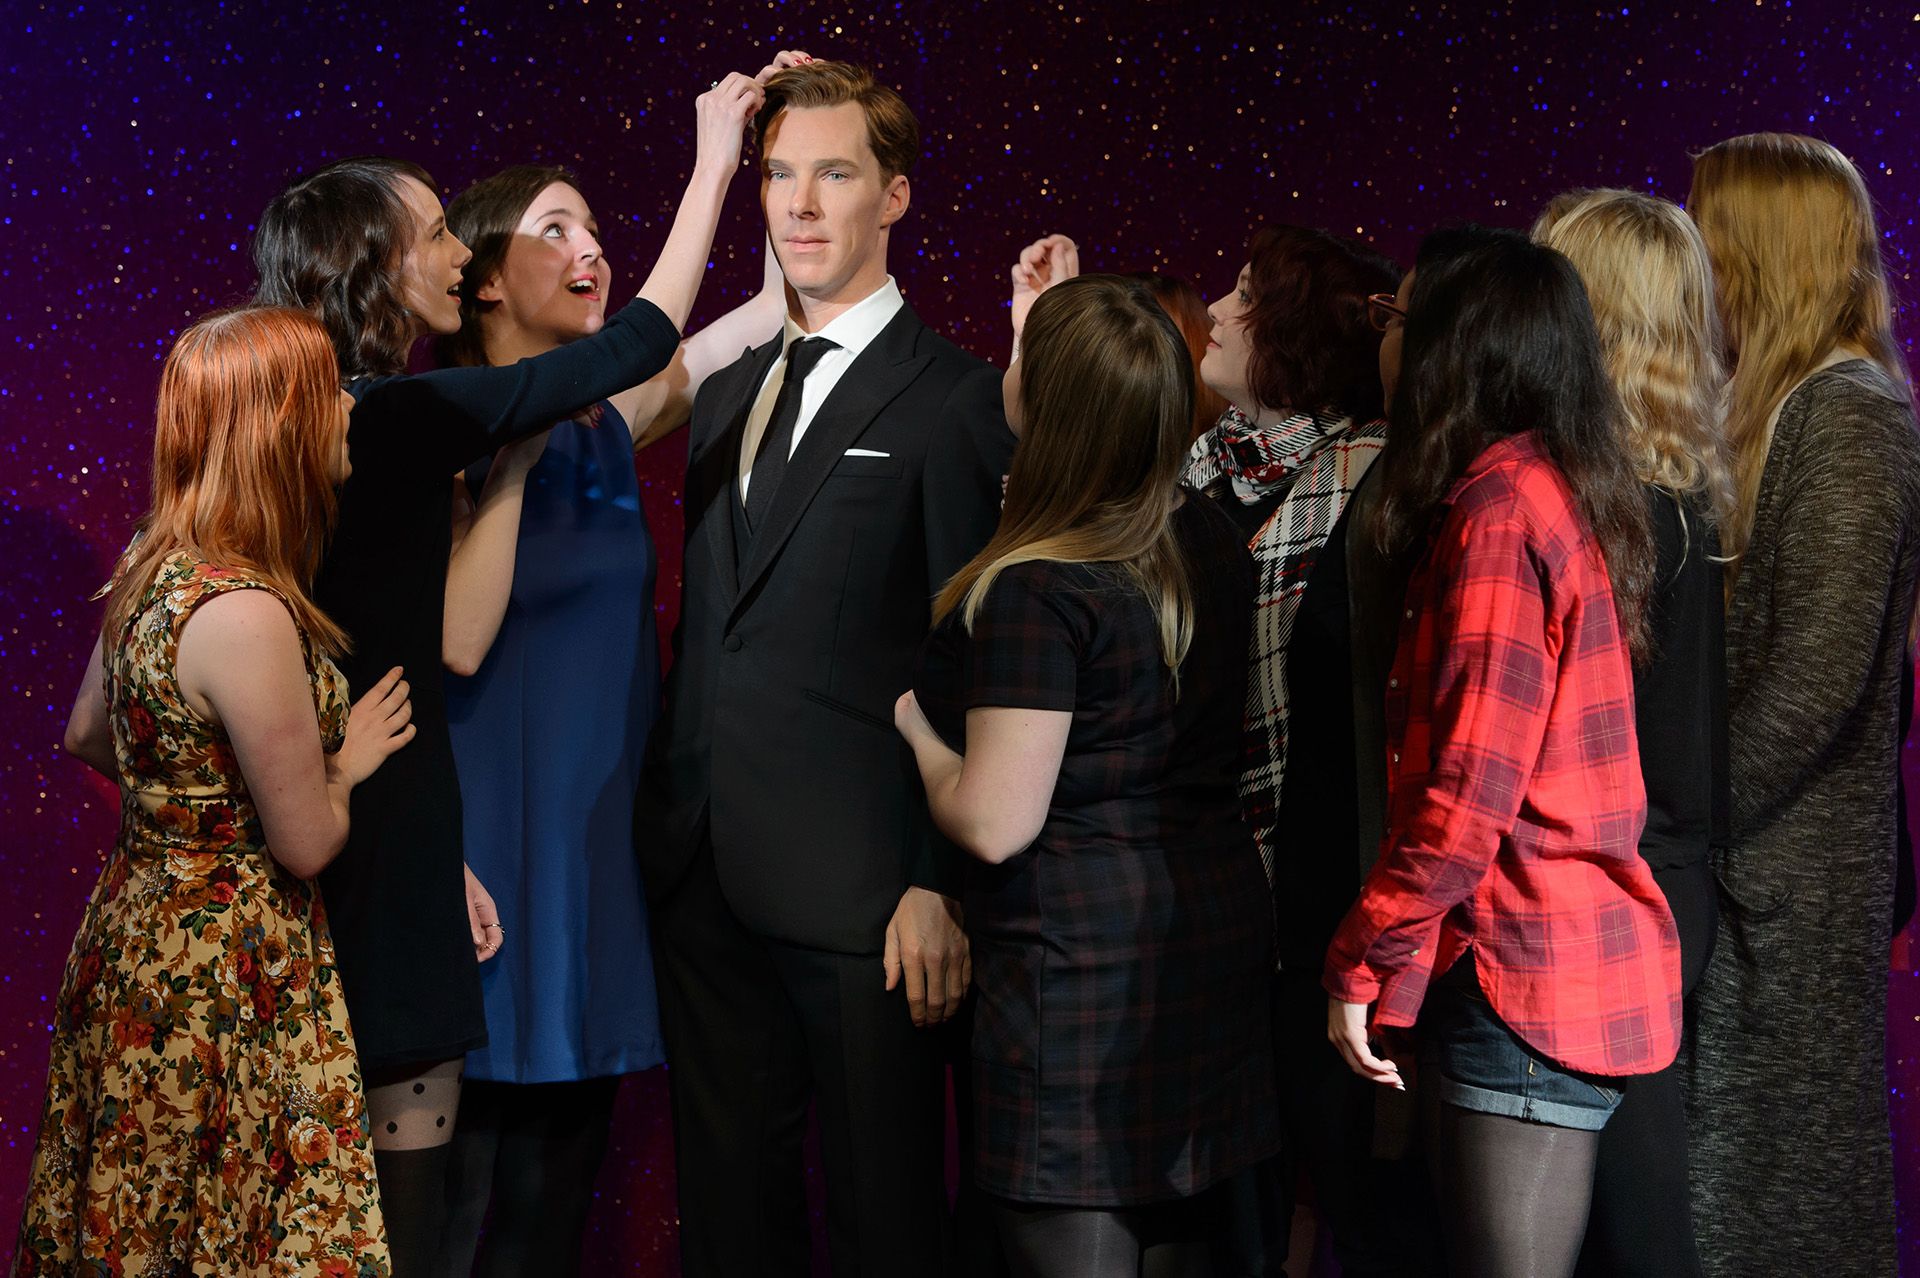 Fans interacting with Benedict Cumberbatch figure at Madame Tussauds London